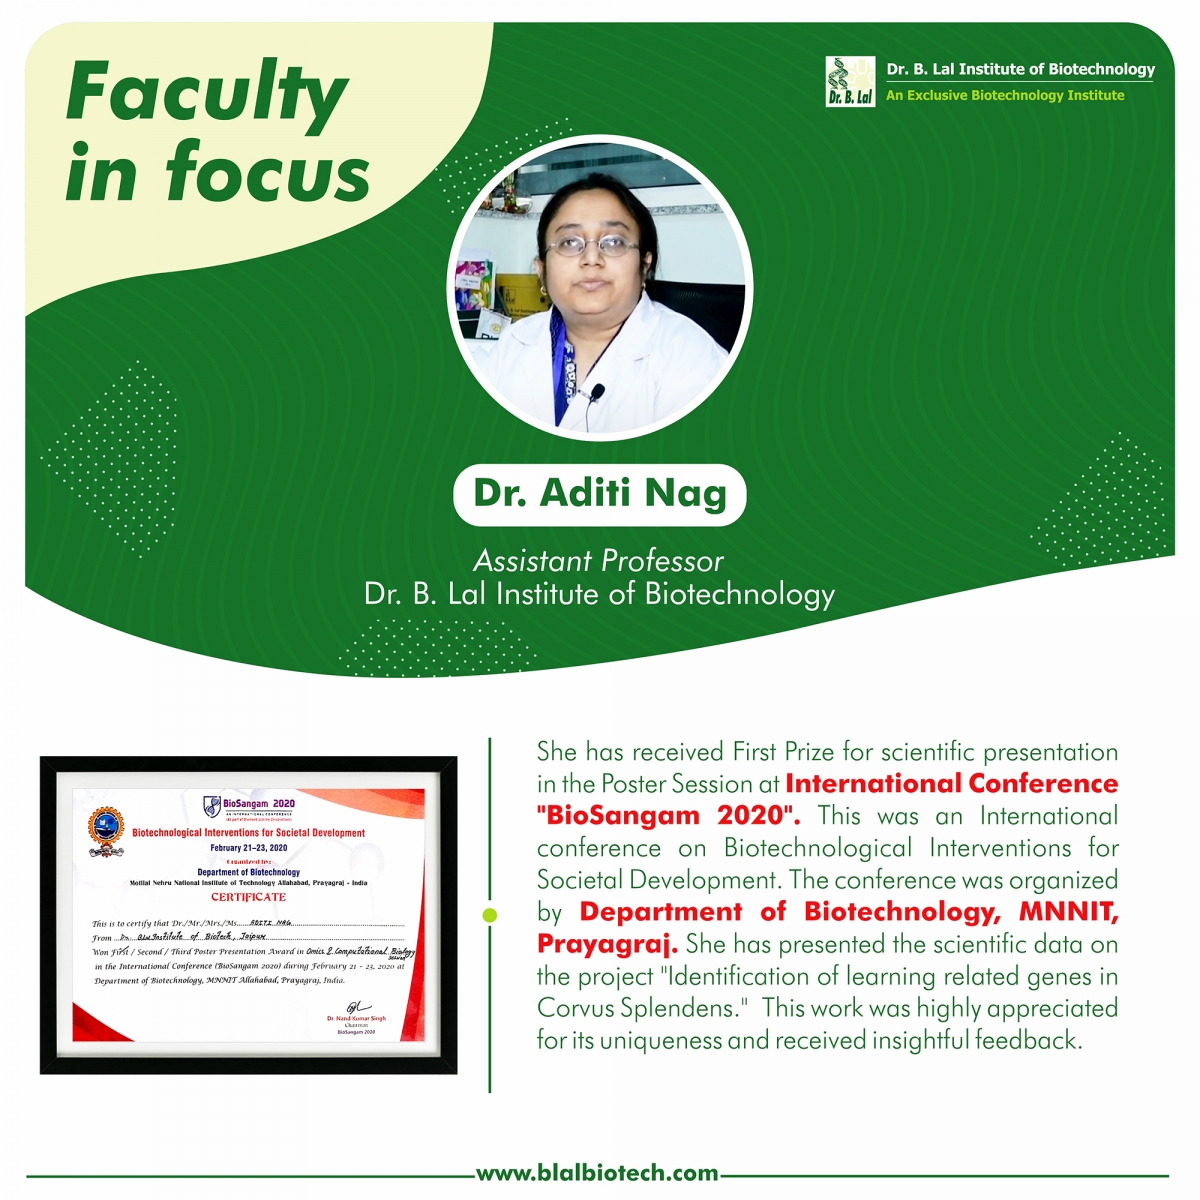 Dr. Aditi Nag at International Conference